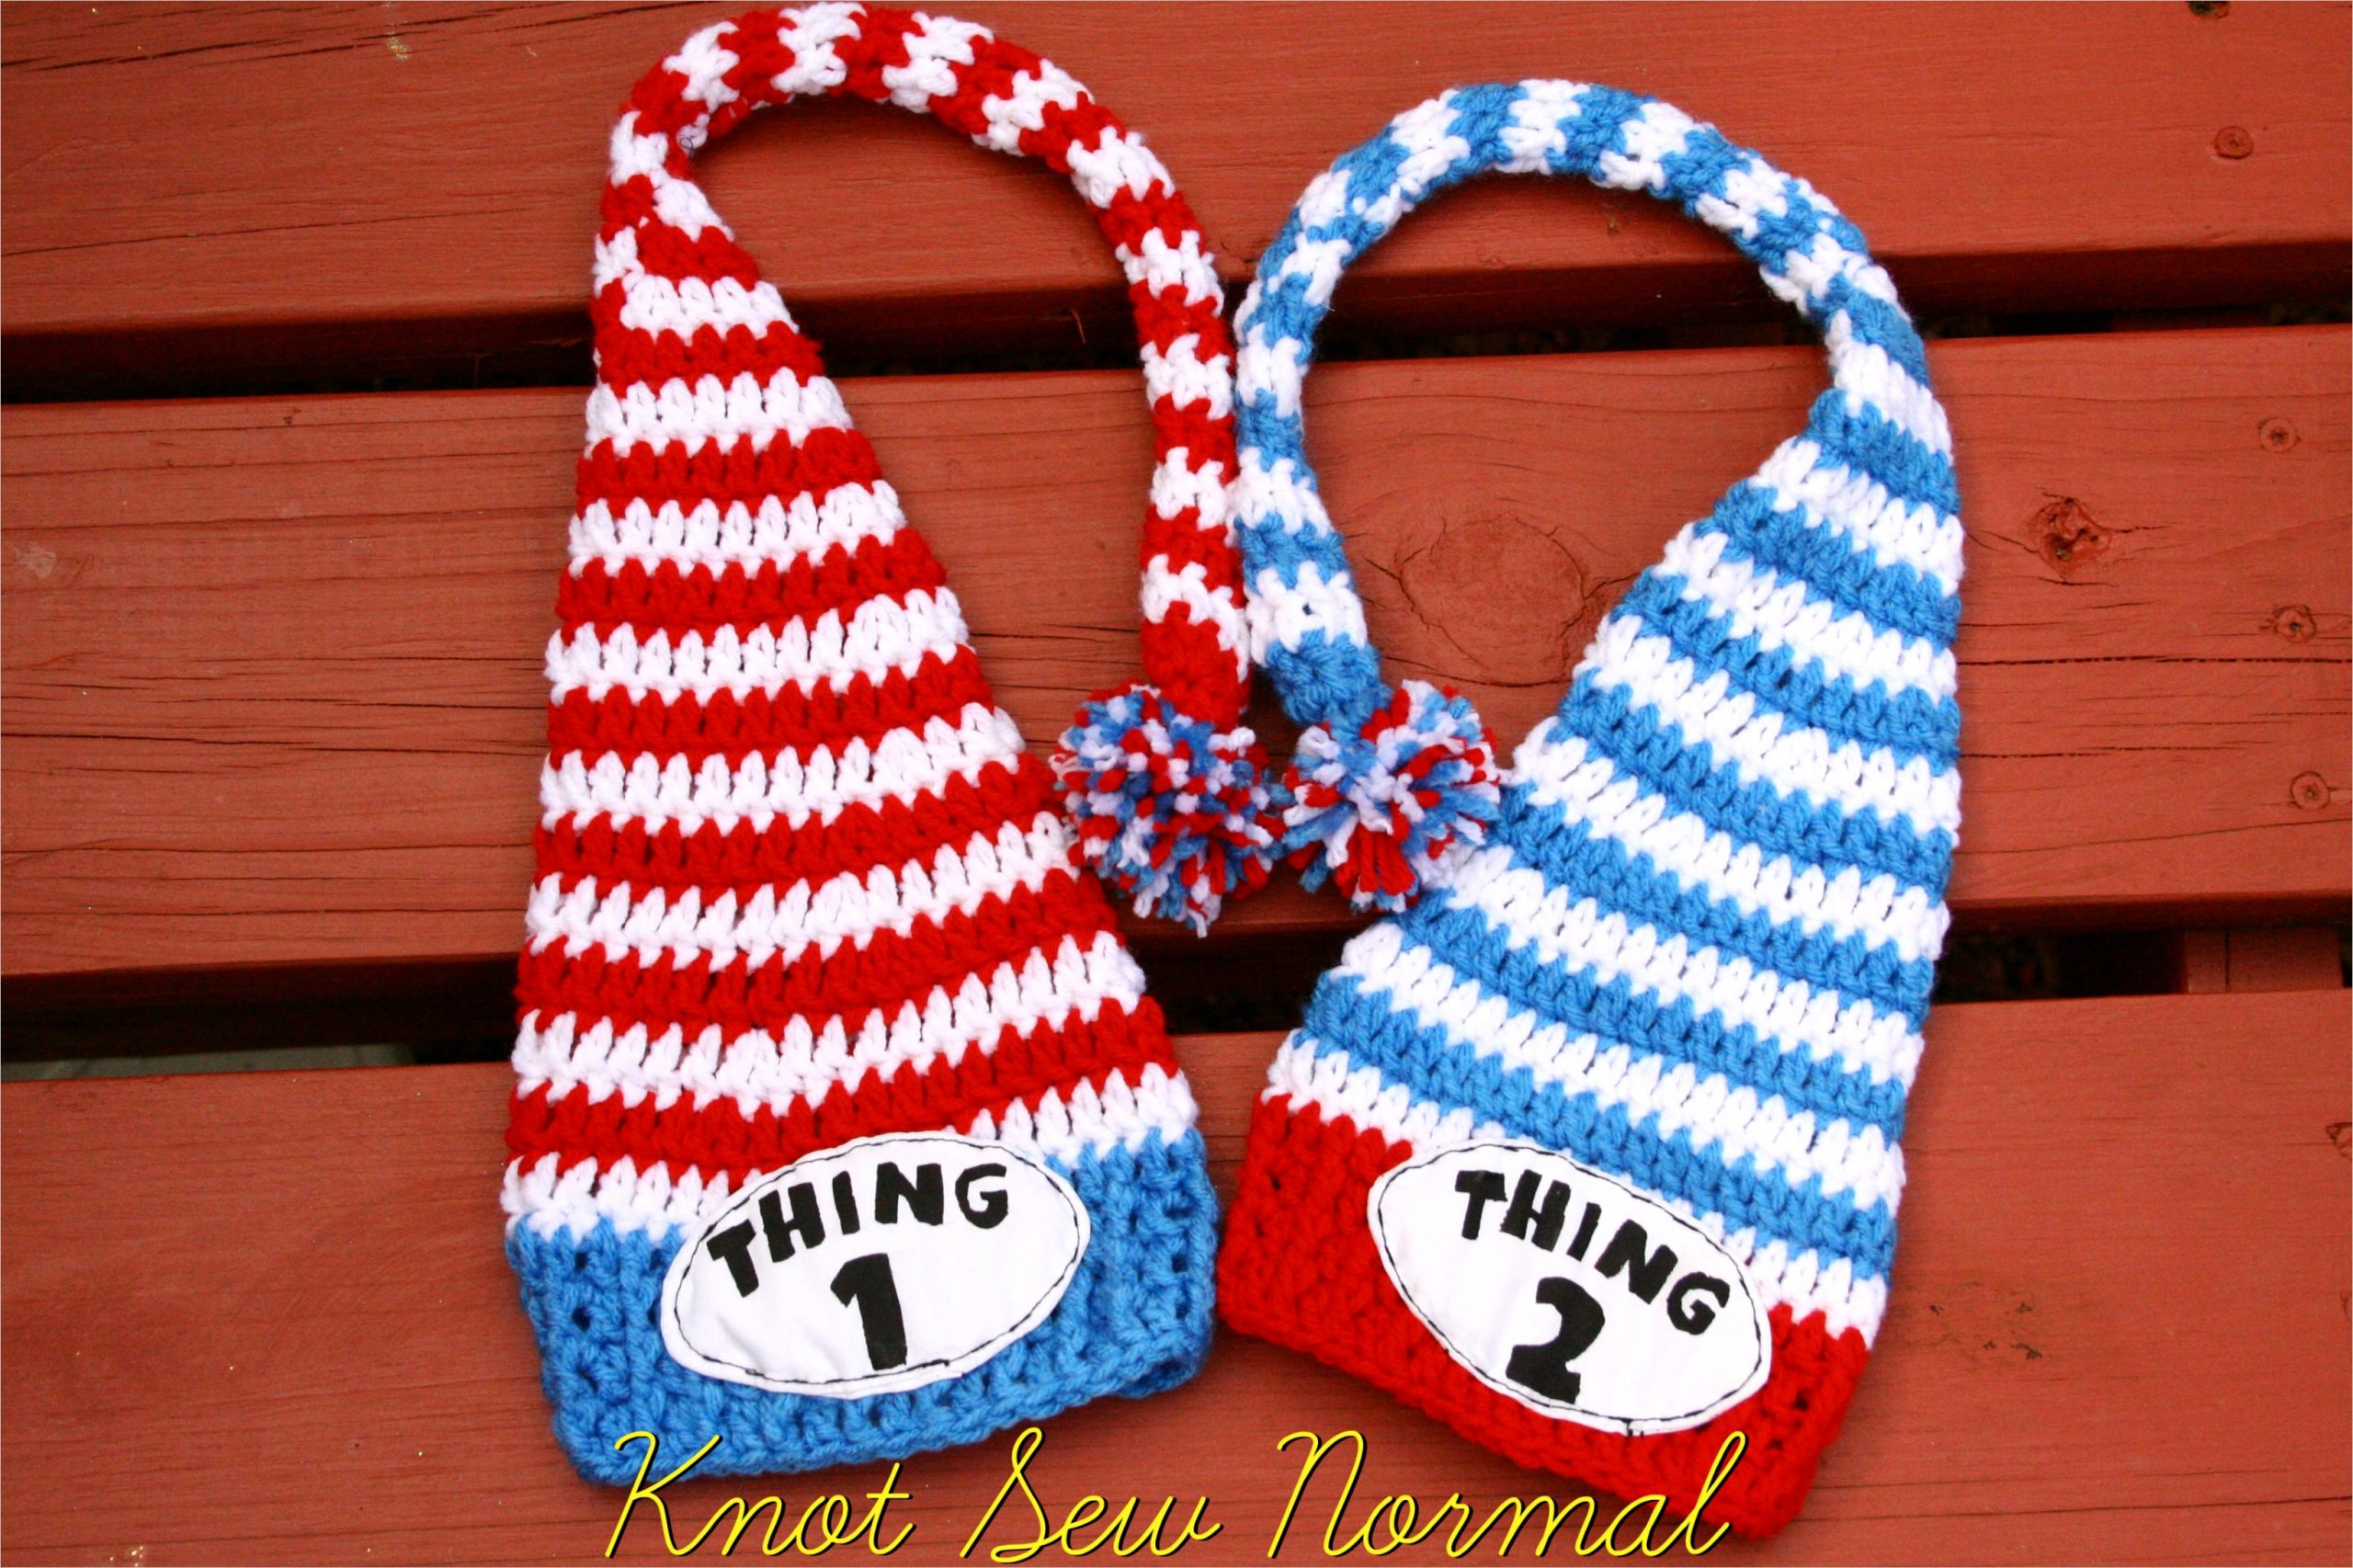 out of the box came thing 2 and thing 1 crochet hat set